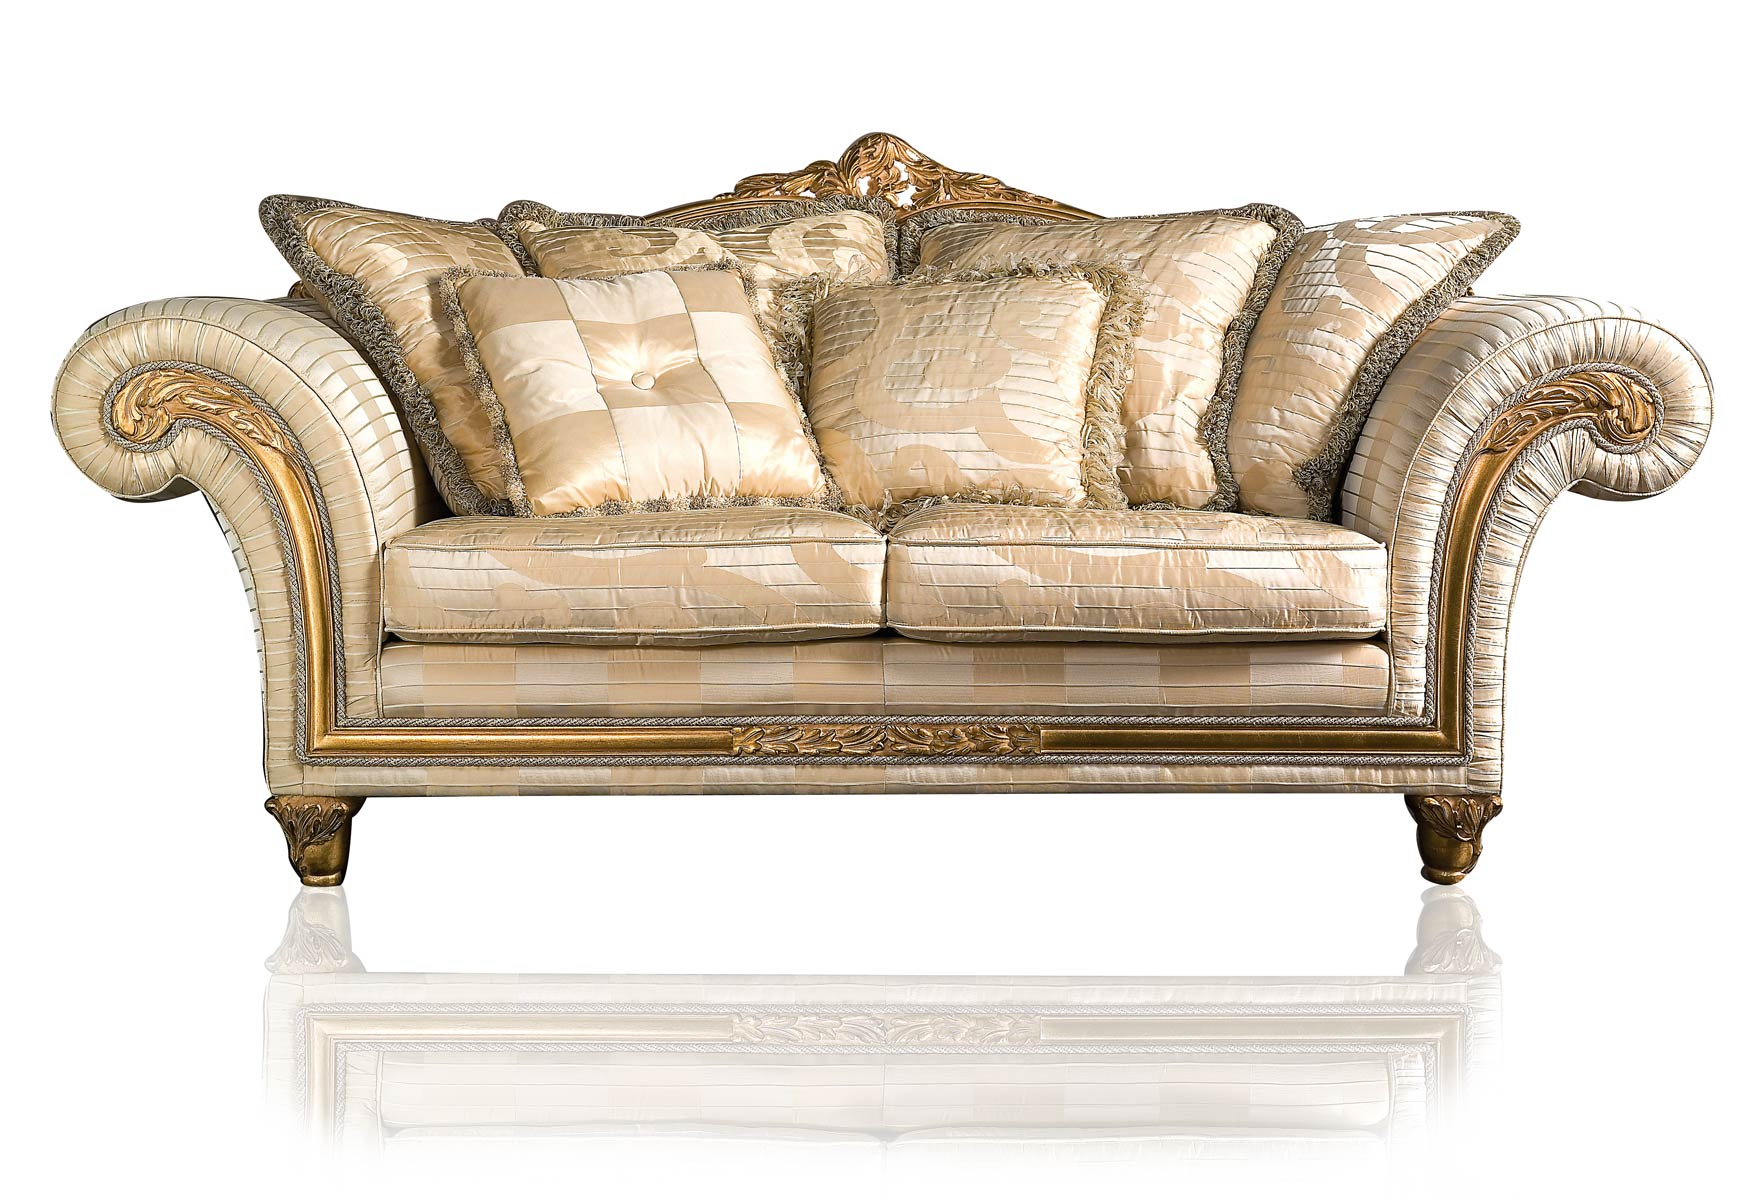 Classic sofa imperial in ivory fabric vimercati classic for Sofa royal classic